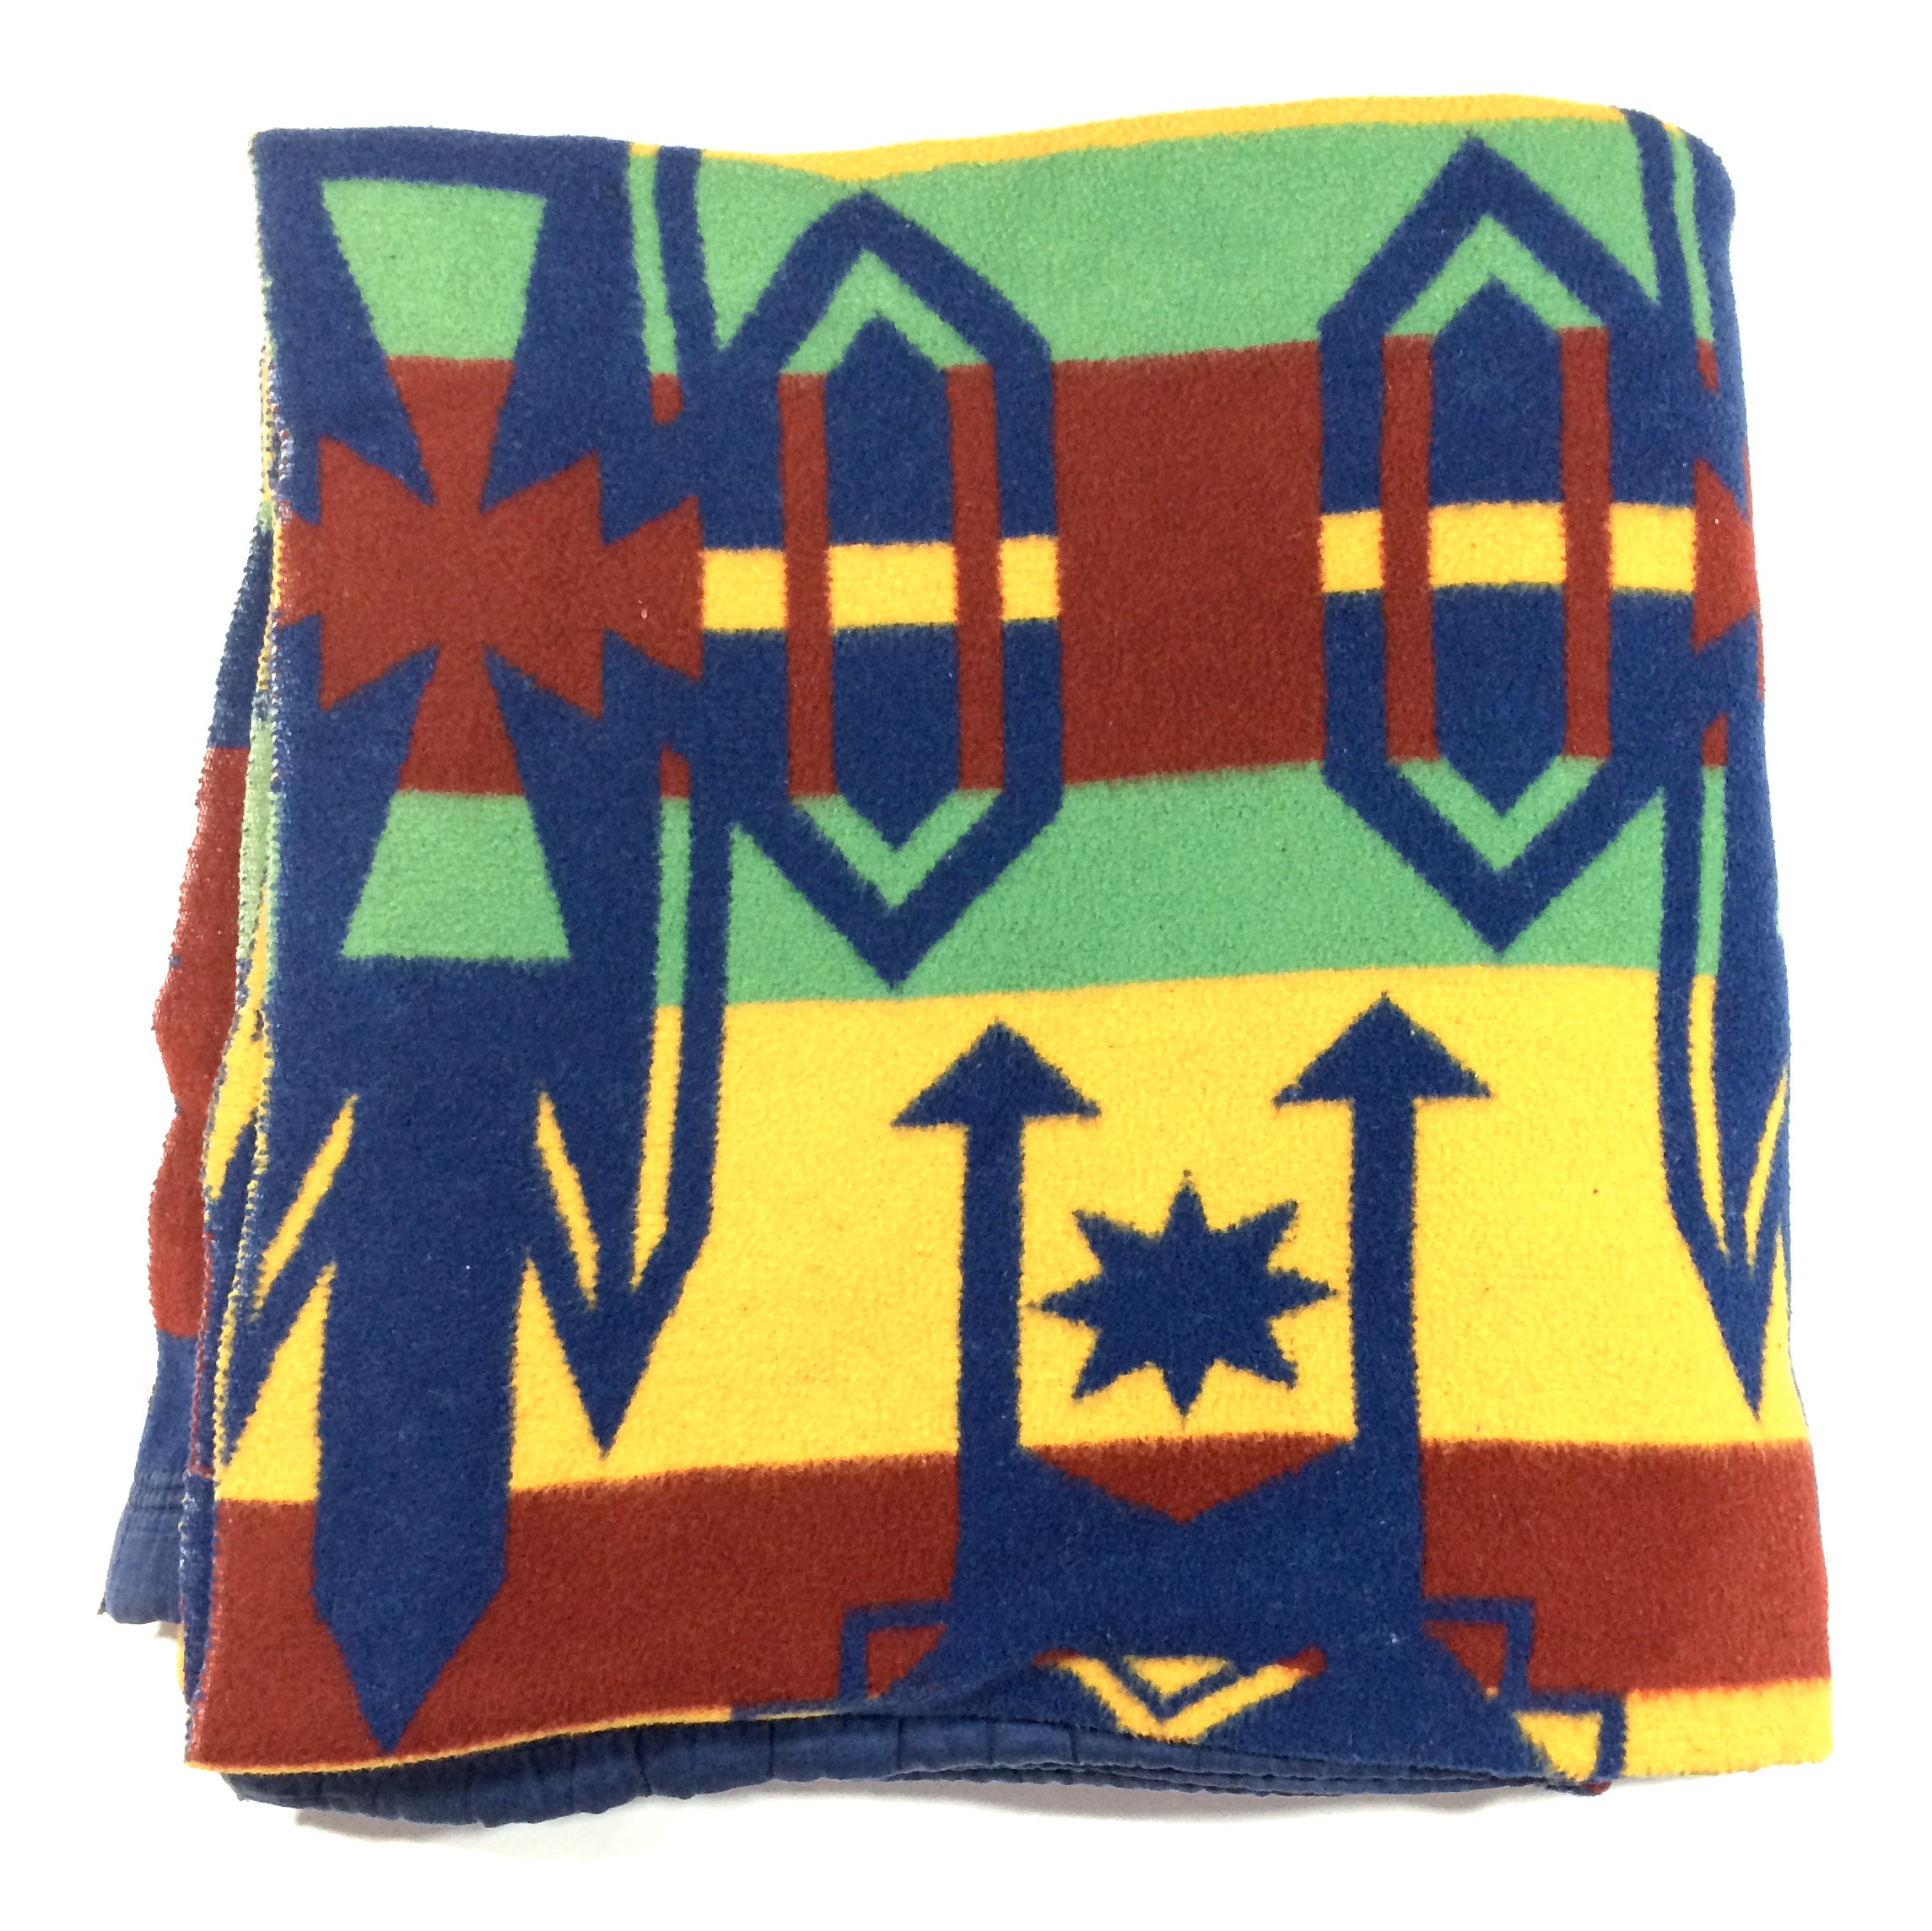 Image of VINTAGE CAMP BLANKET *BLACKFRIDAY*